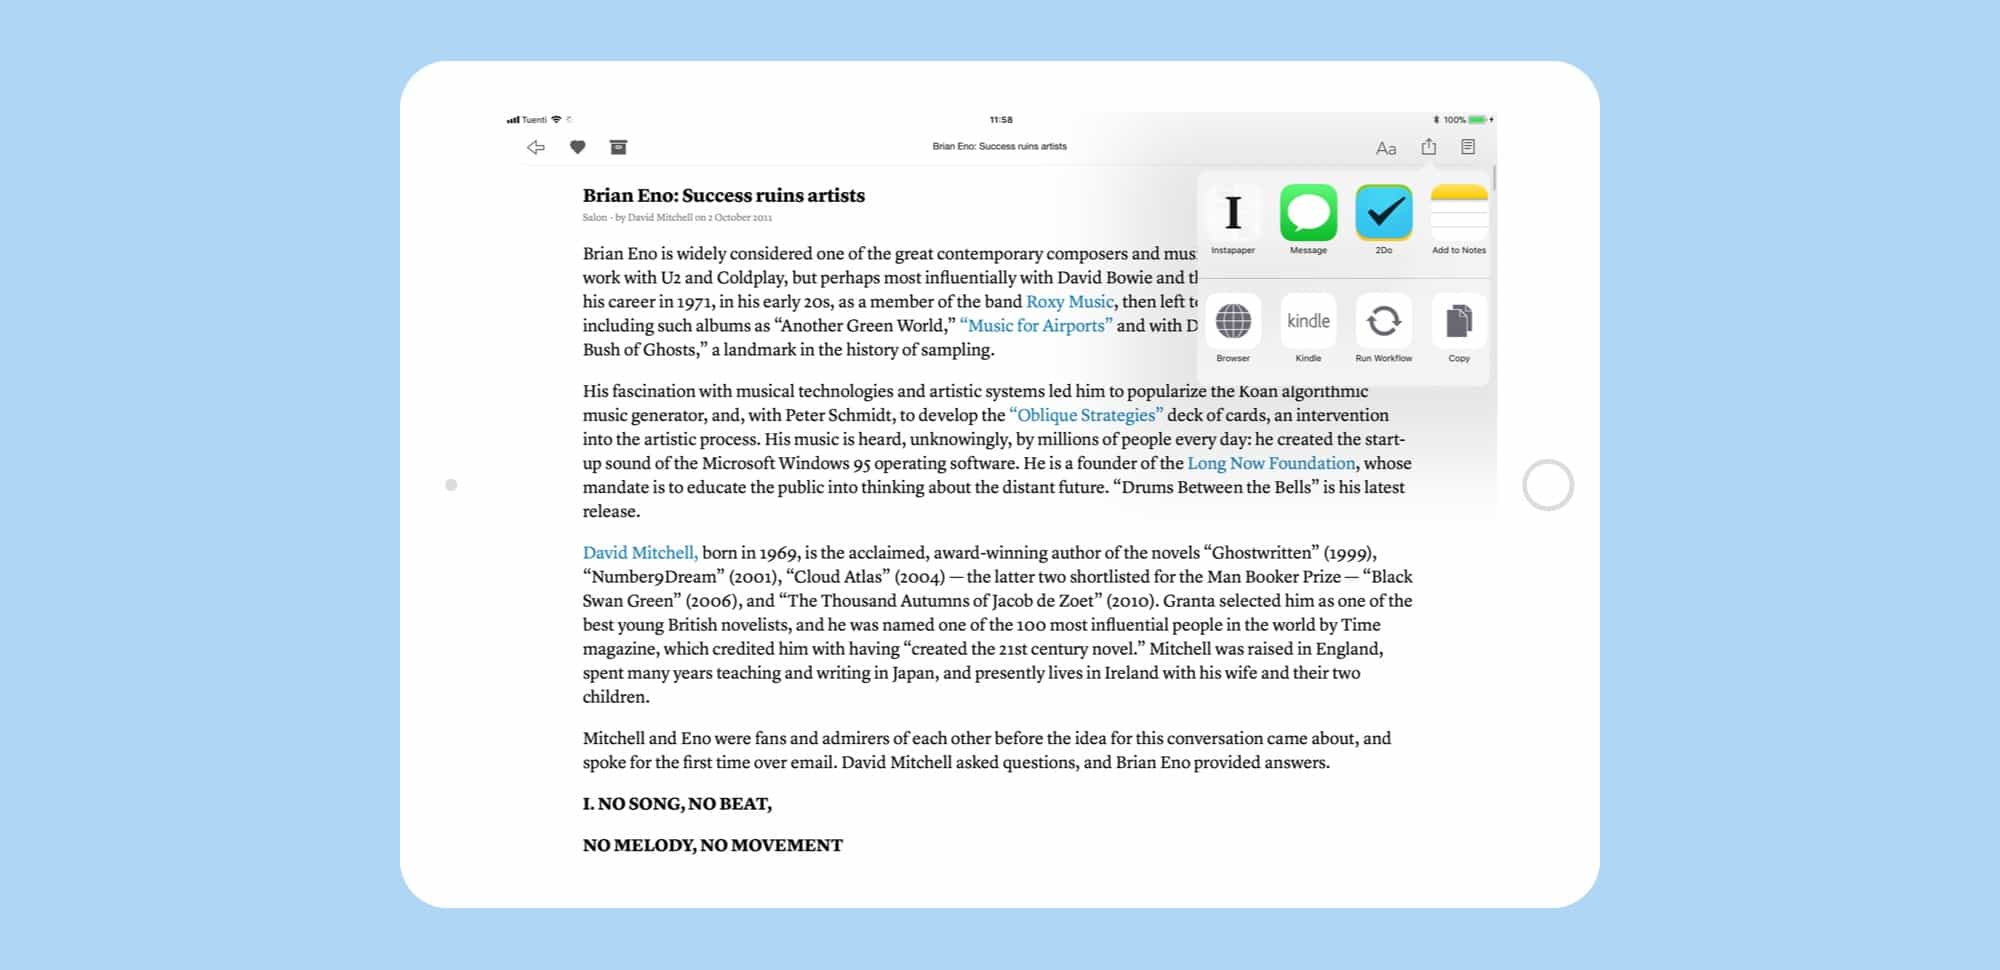 Sharing from Instapaper is super easy.